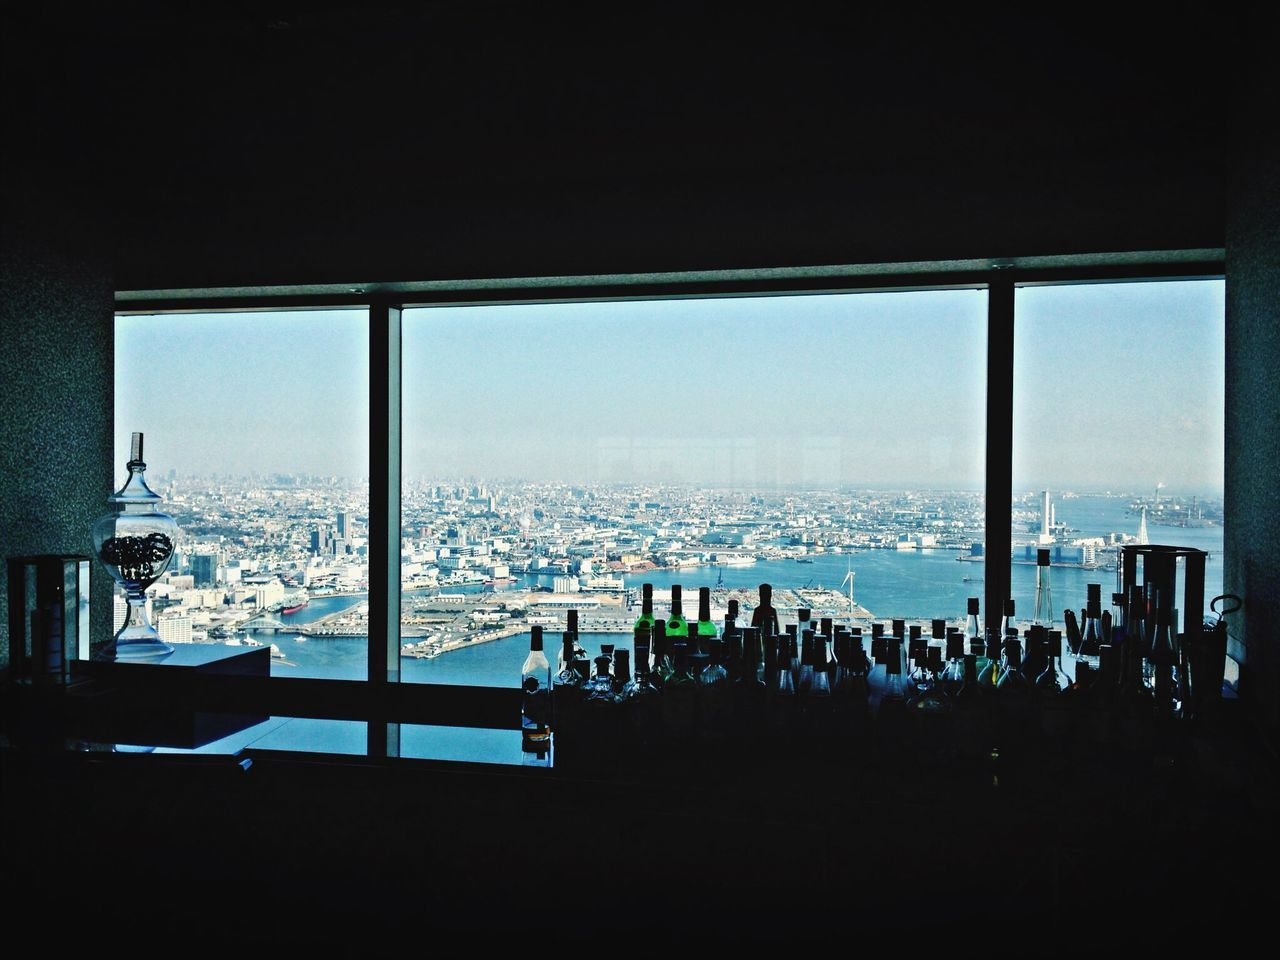 Skylines Stifanibrothers Skyline Cityscapes Impossible Moments Asian Culture Seeing The Sights A Bird's Eye View Sommergefühle Built_Structure No People Sky Bottles Collection Bar Yokohama, Japan